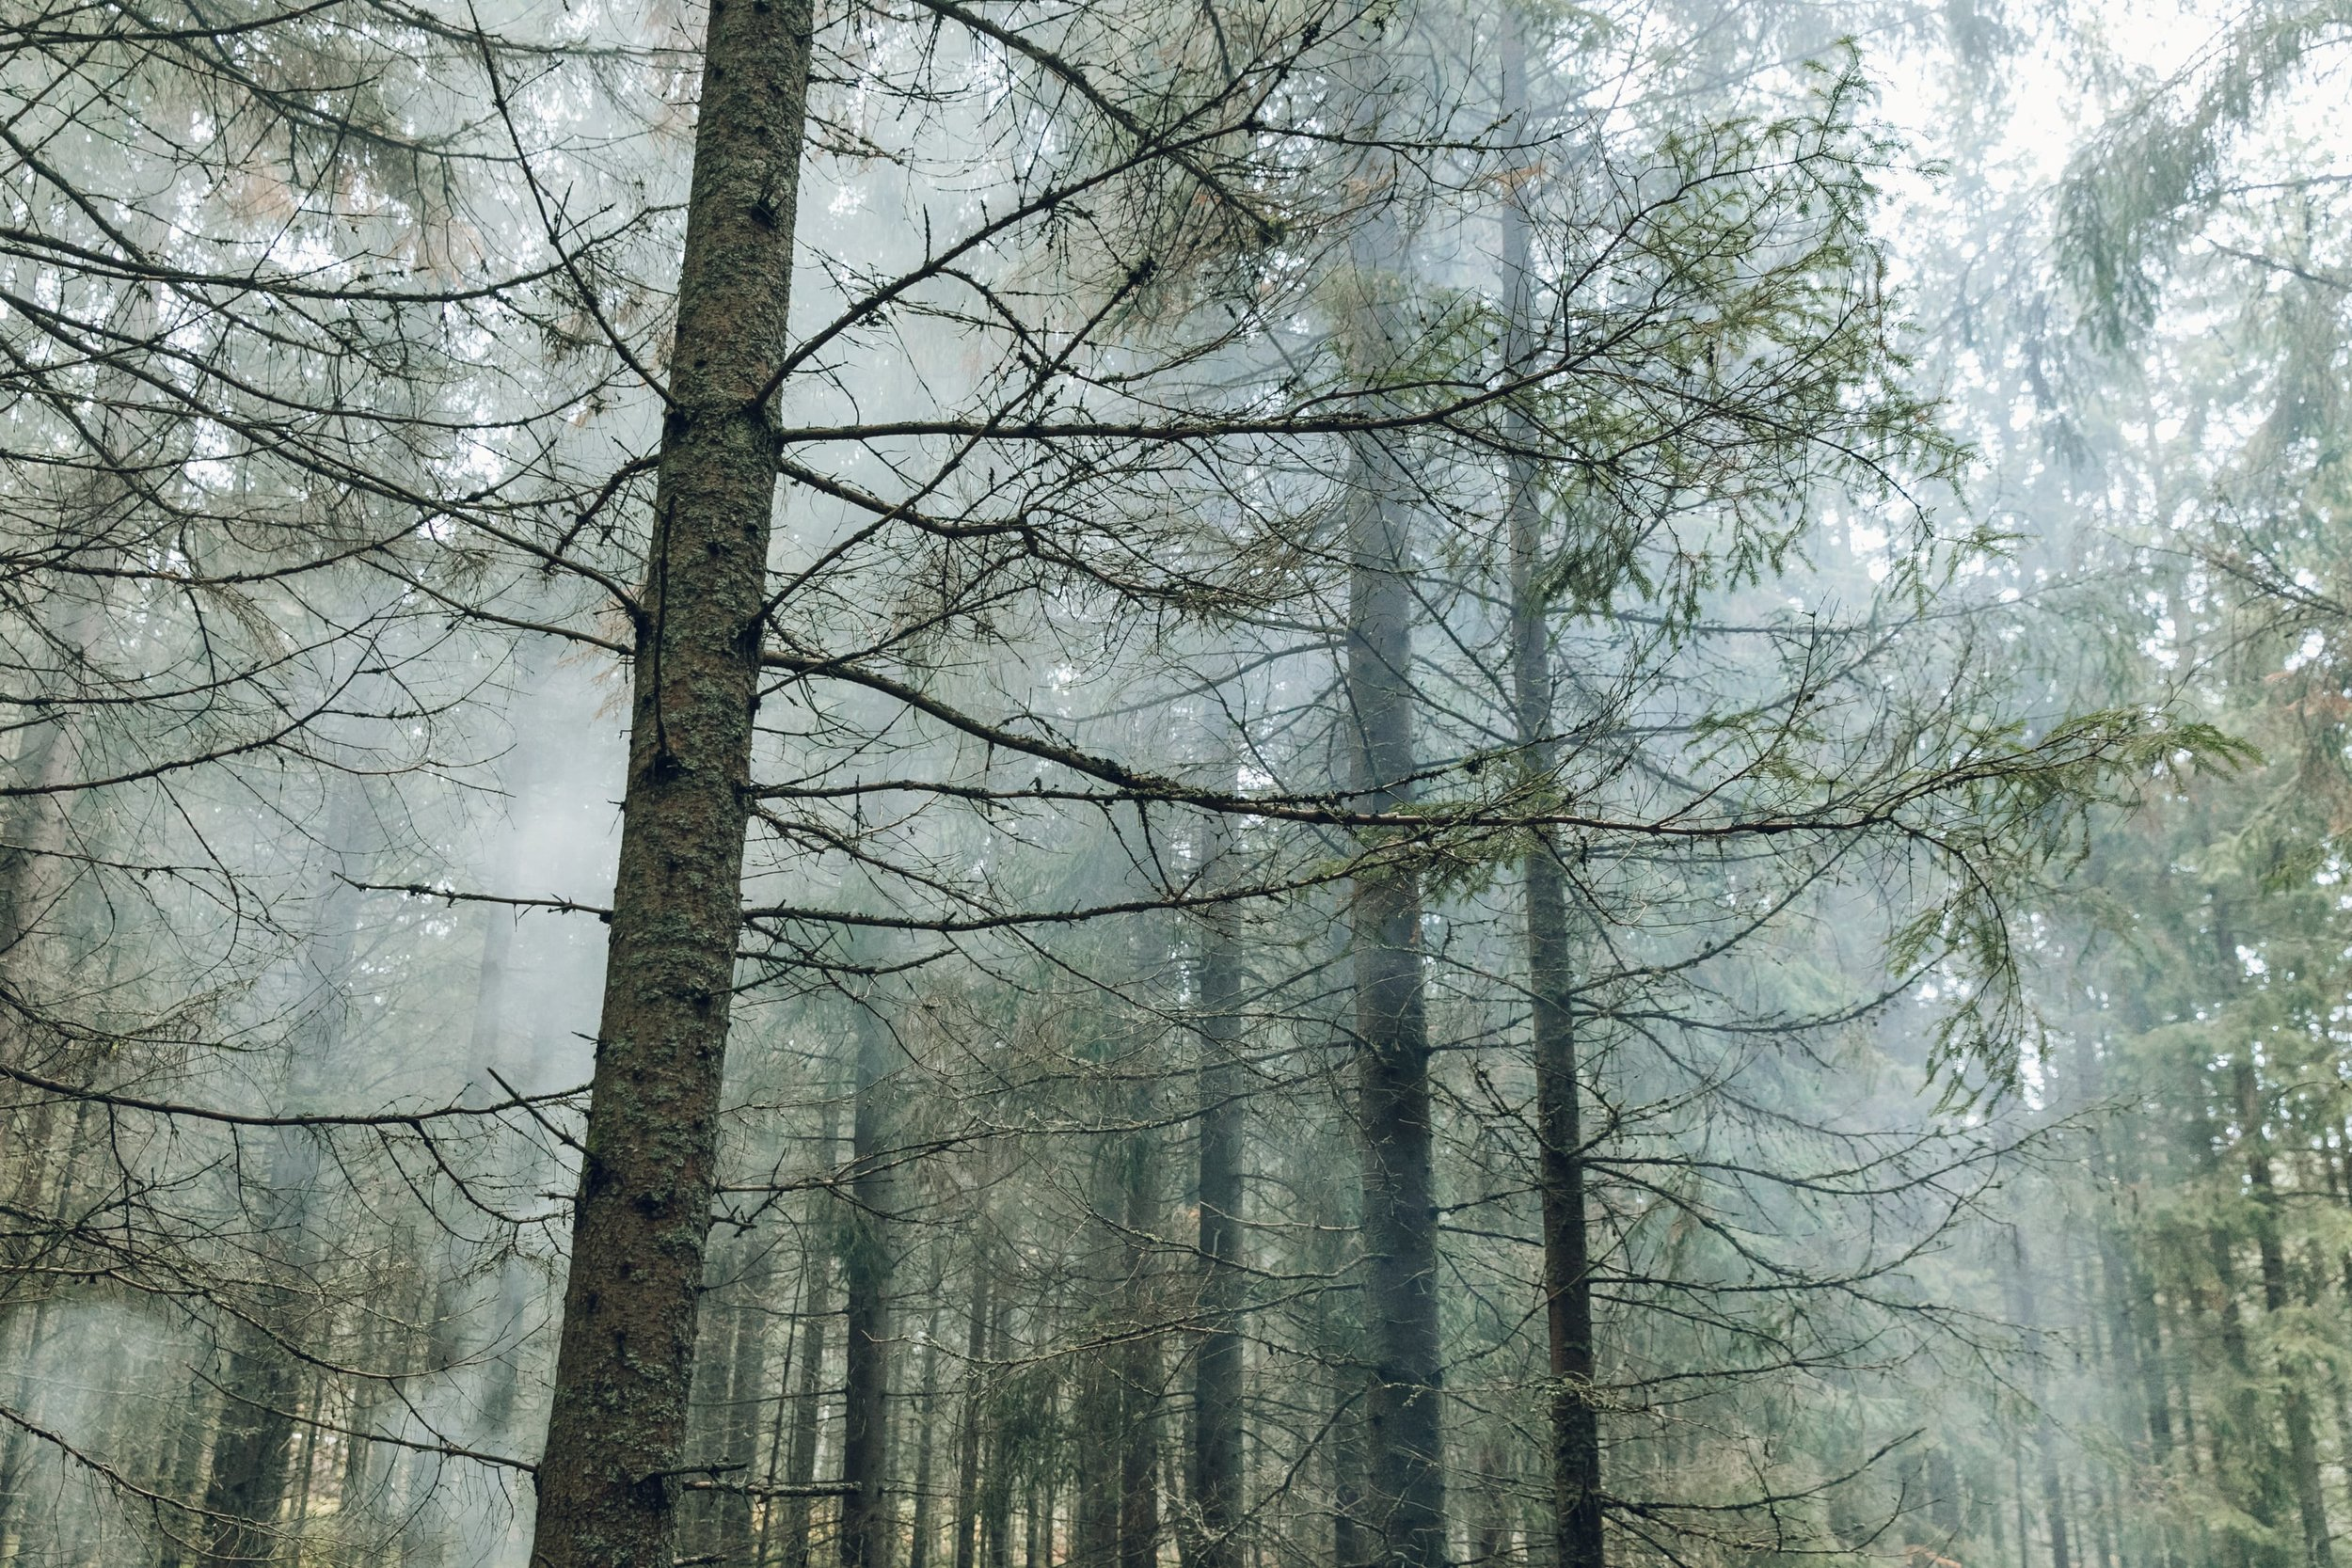 Forest in Sweden, photographed by Haarkon